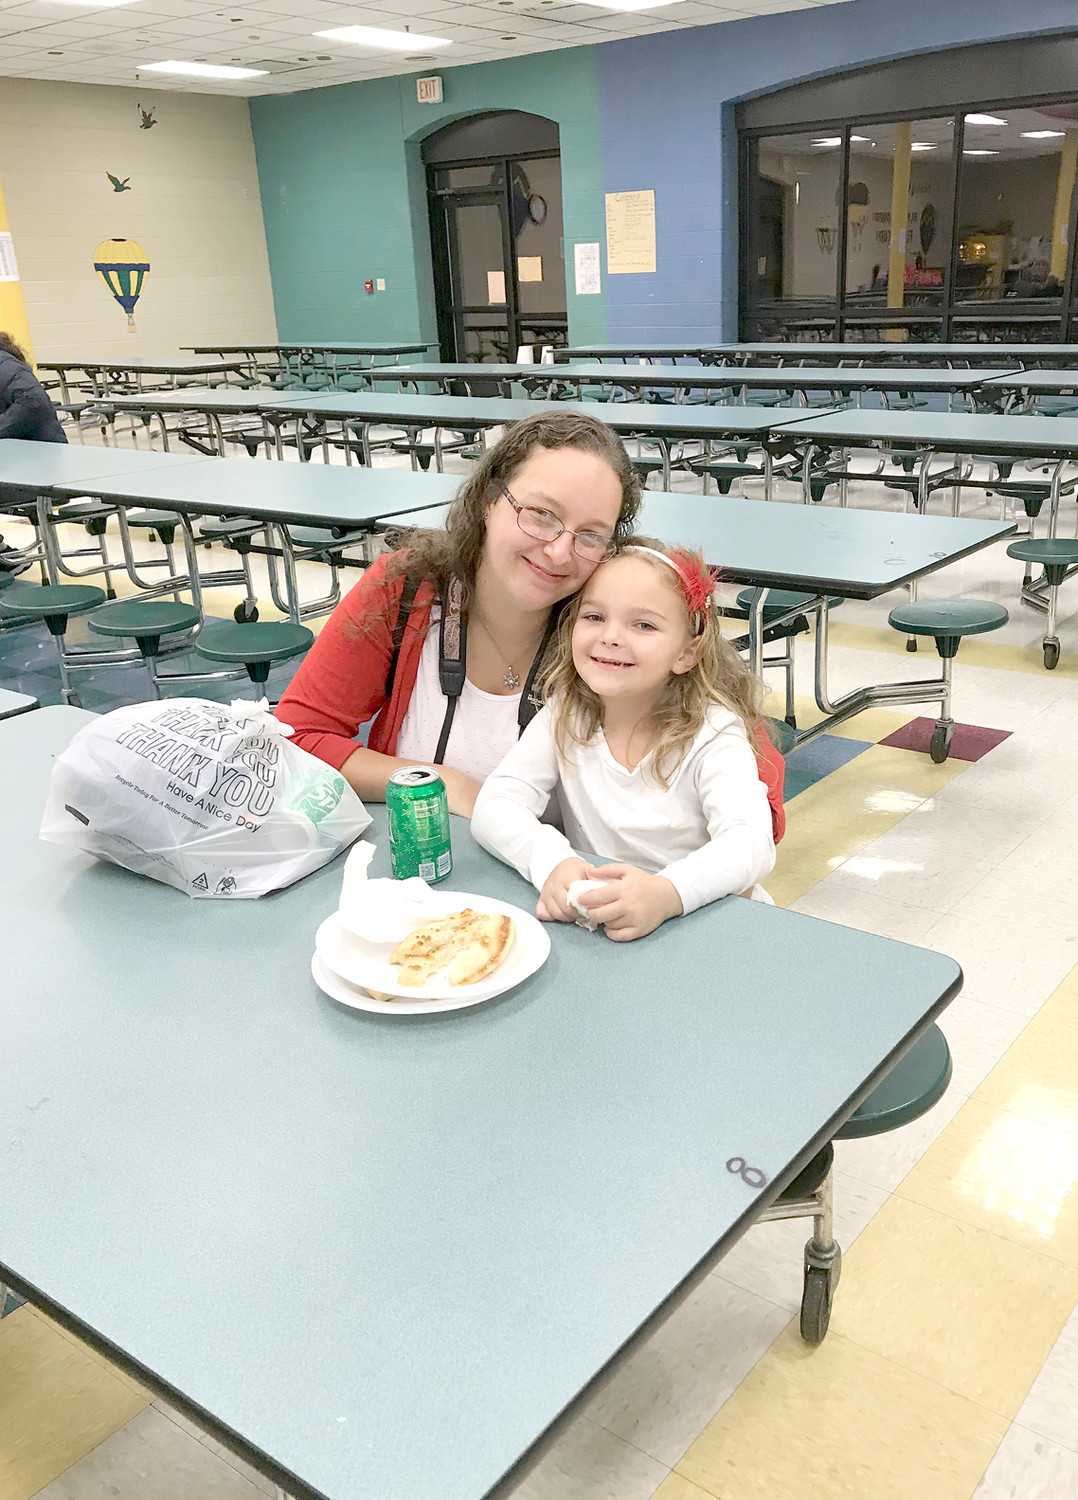 REGINA AND CEYANA BRACKNELL enjoyed some pizza during Christmas Dance and Fun Night at Blythe-Bower Elementary School.